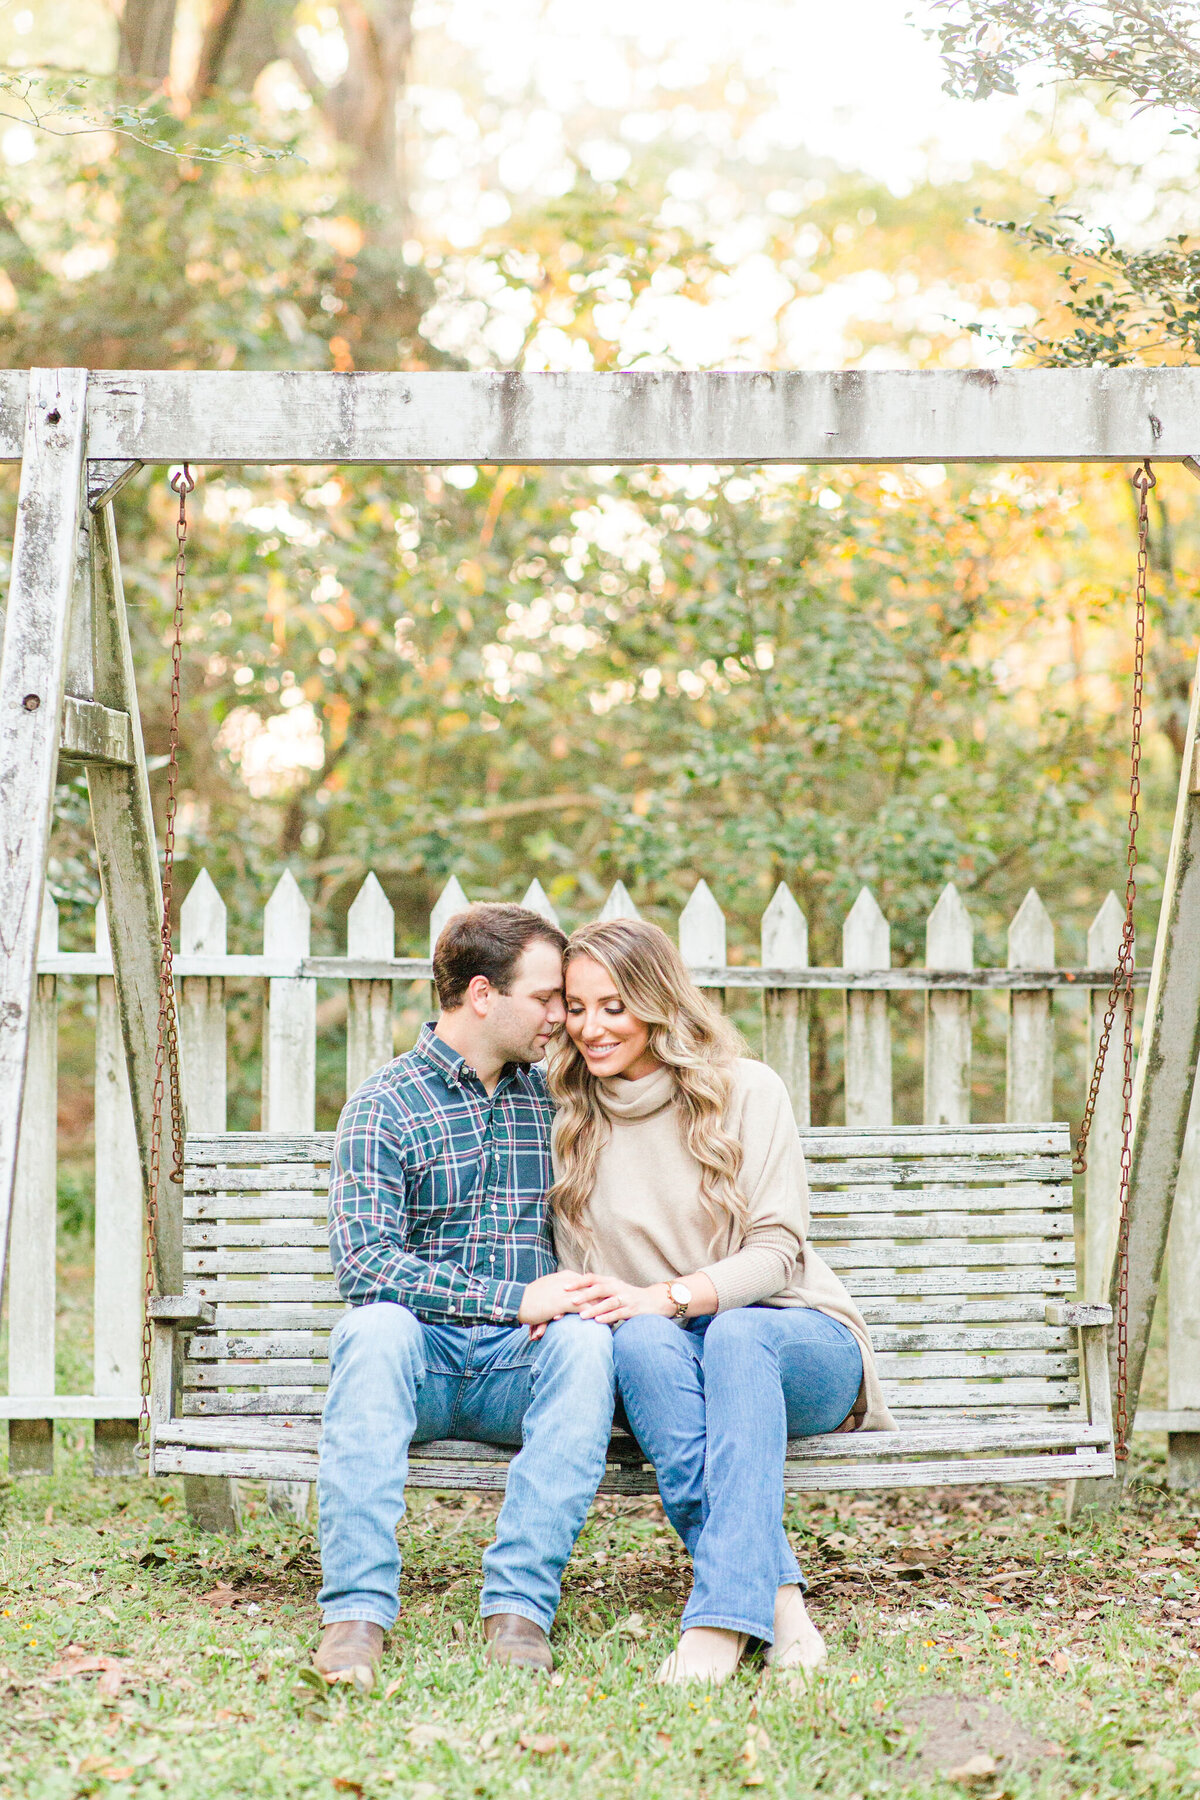 Renee Lorio Photography South Louisiana Wedding Engagement Light Airy Portrait Photographer Photos Southern Clean Colorful166666